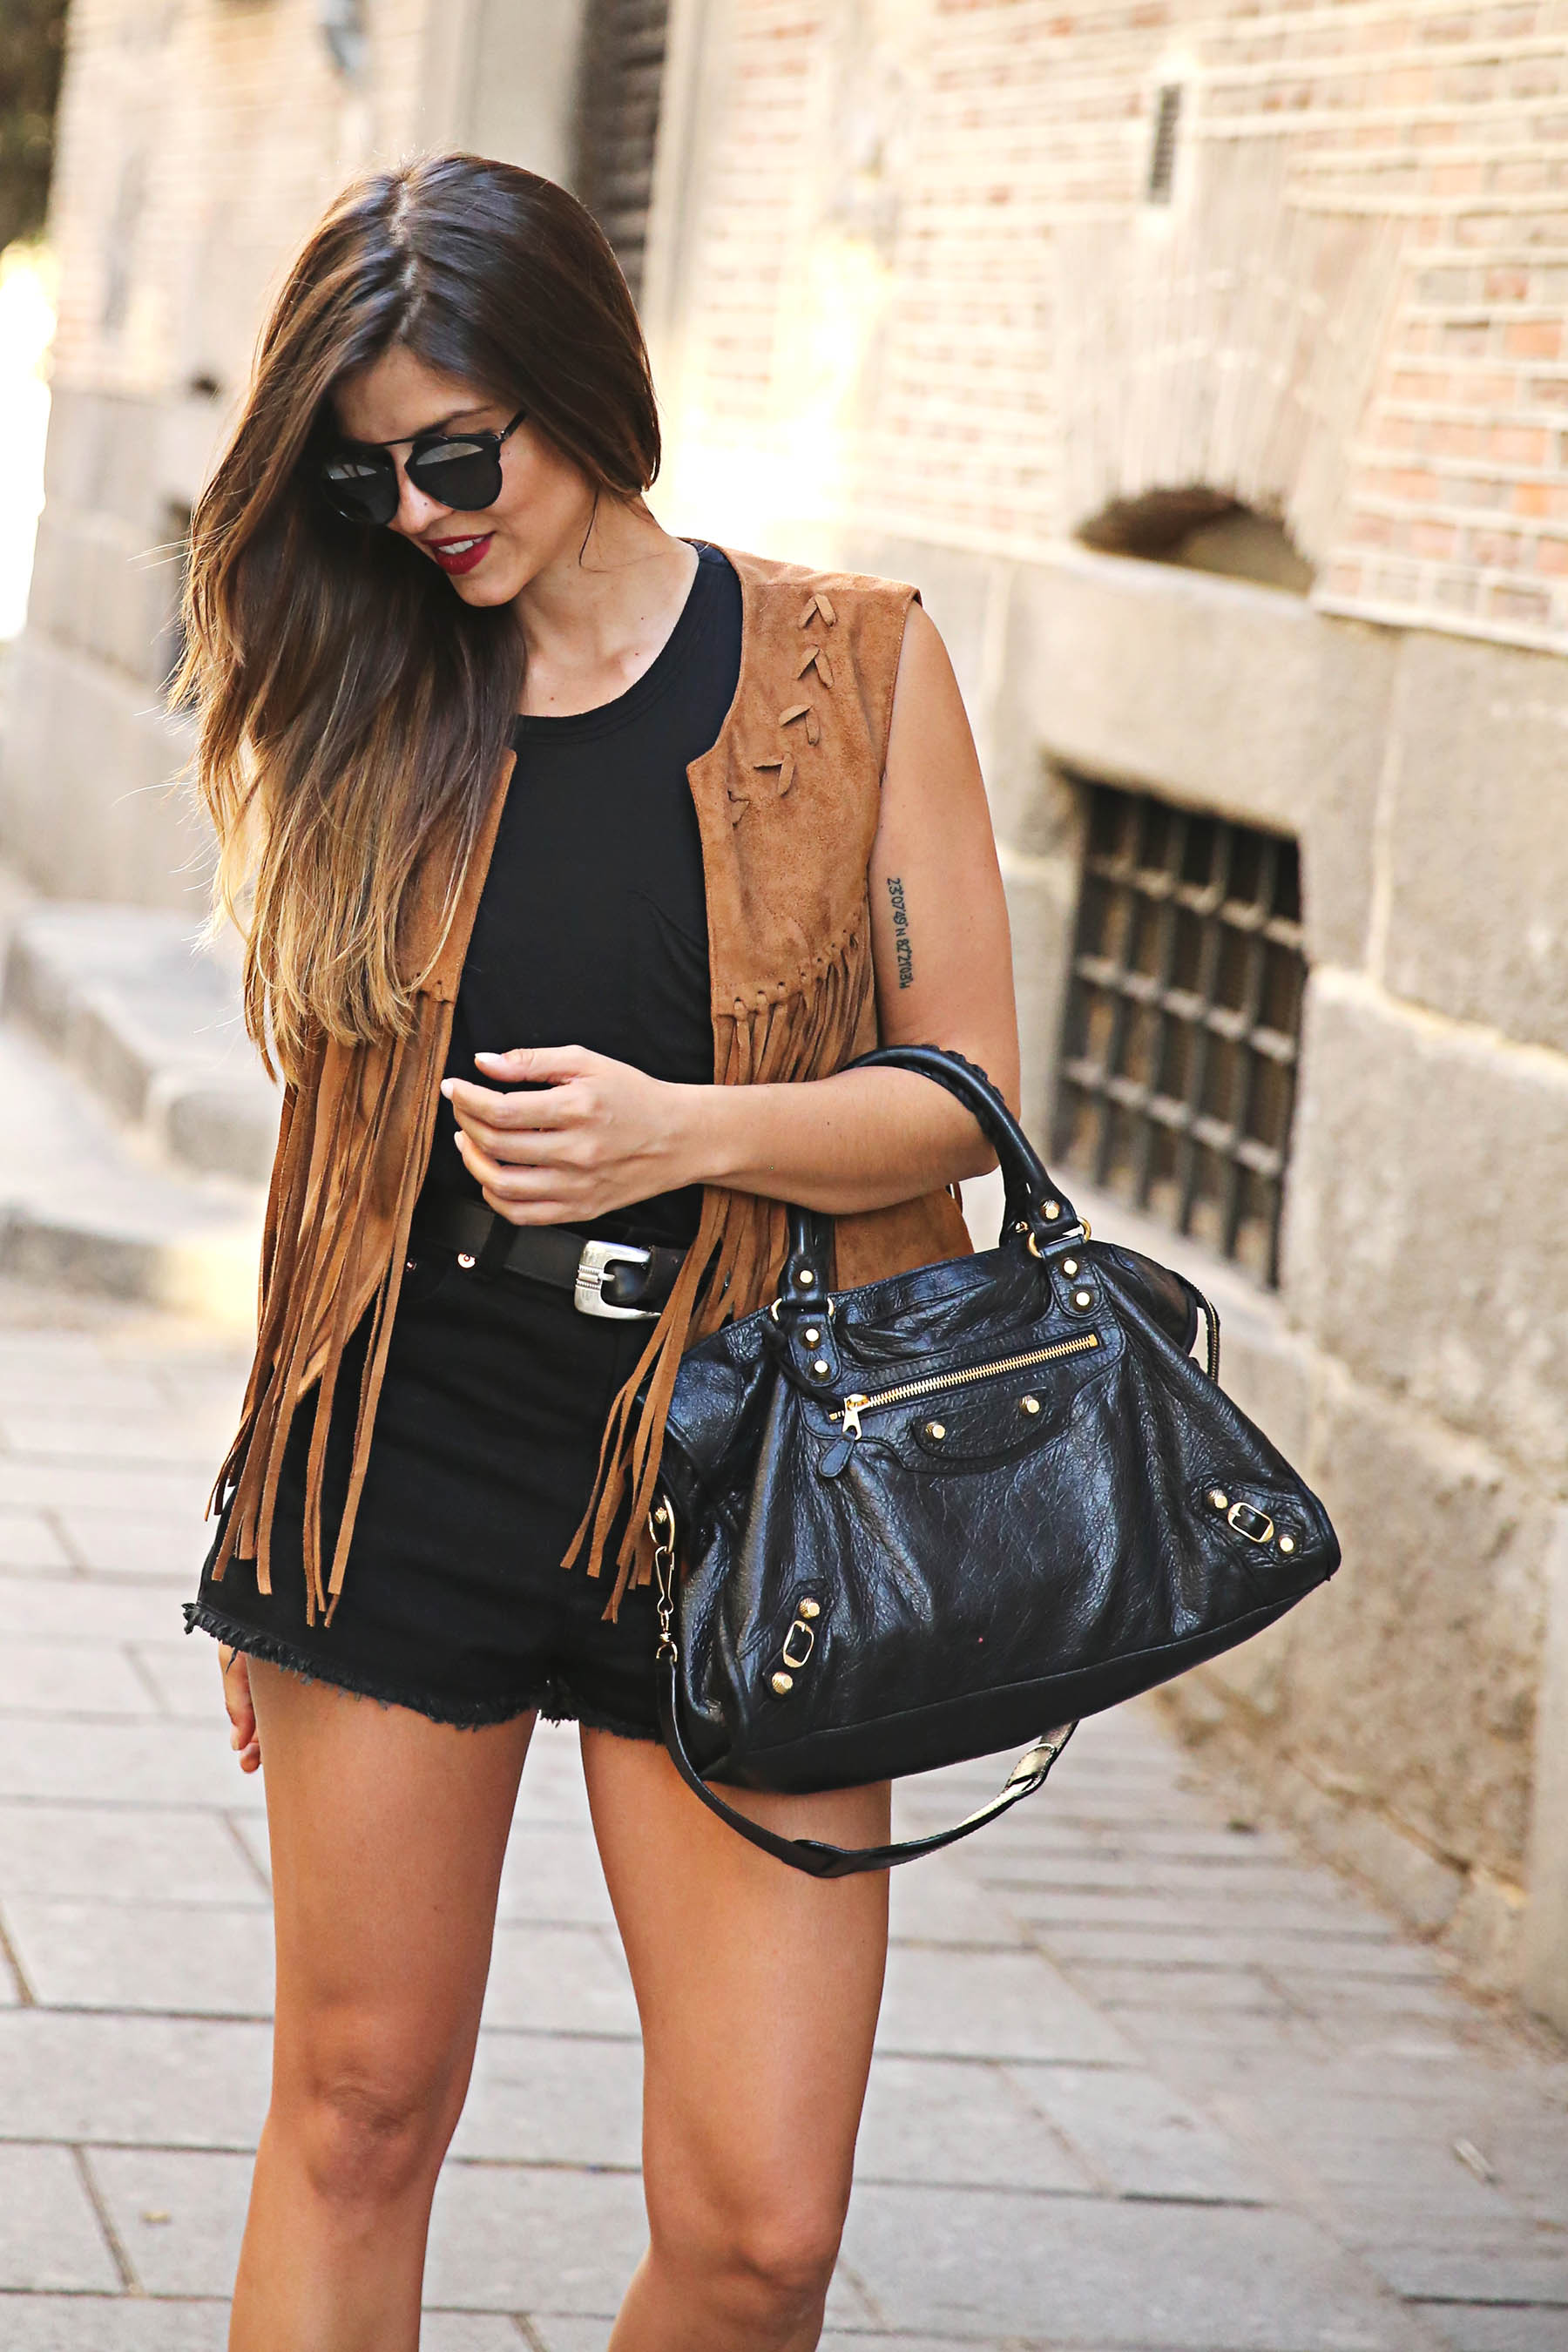 trendy-taste-look-outfit-street-style-ootd-blog-blogger-fashion-spain-moda-españa-chaleco-flecos-fringed-vest-balenciaga-mustt-botines-camperos-shorts-negros-dior-sunnies-gafas-9